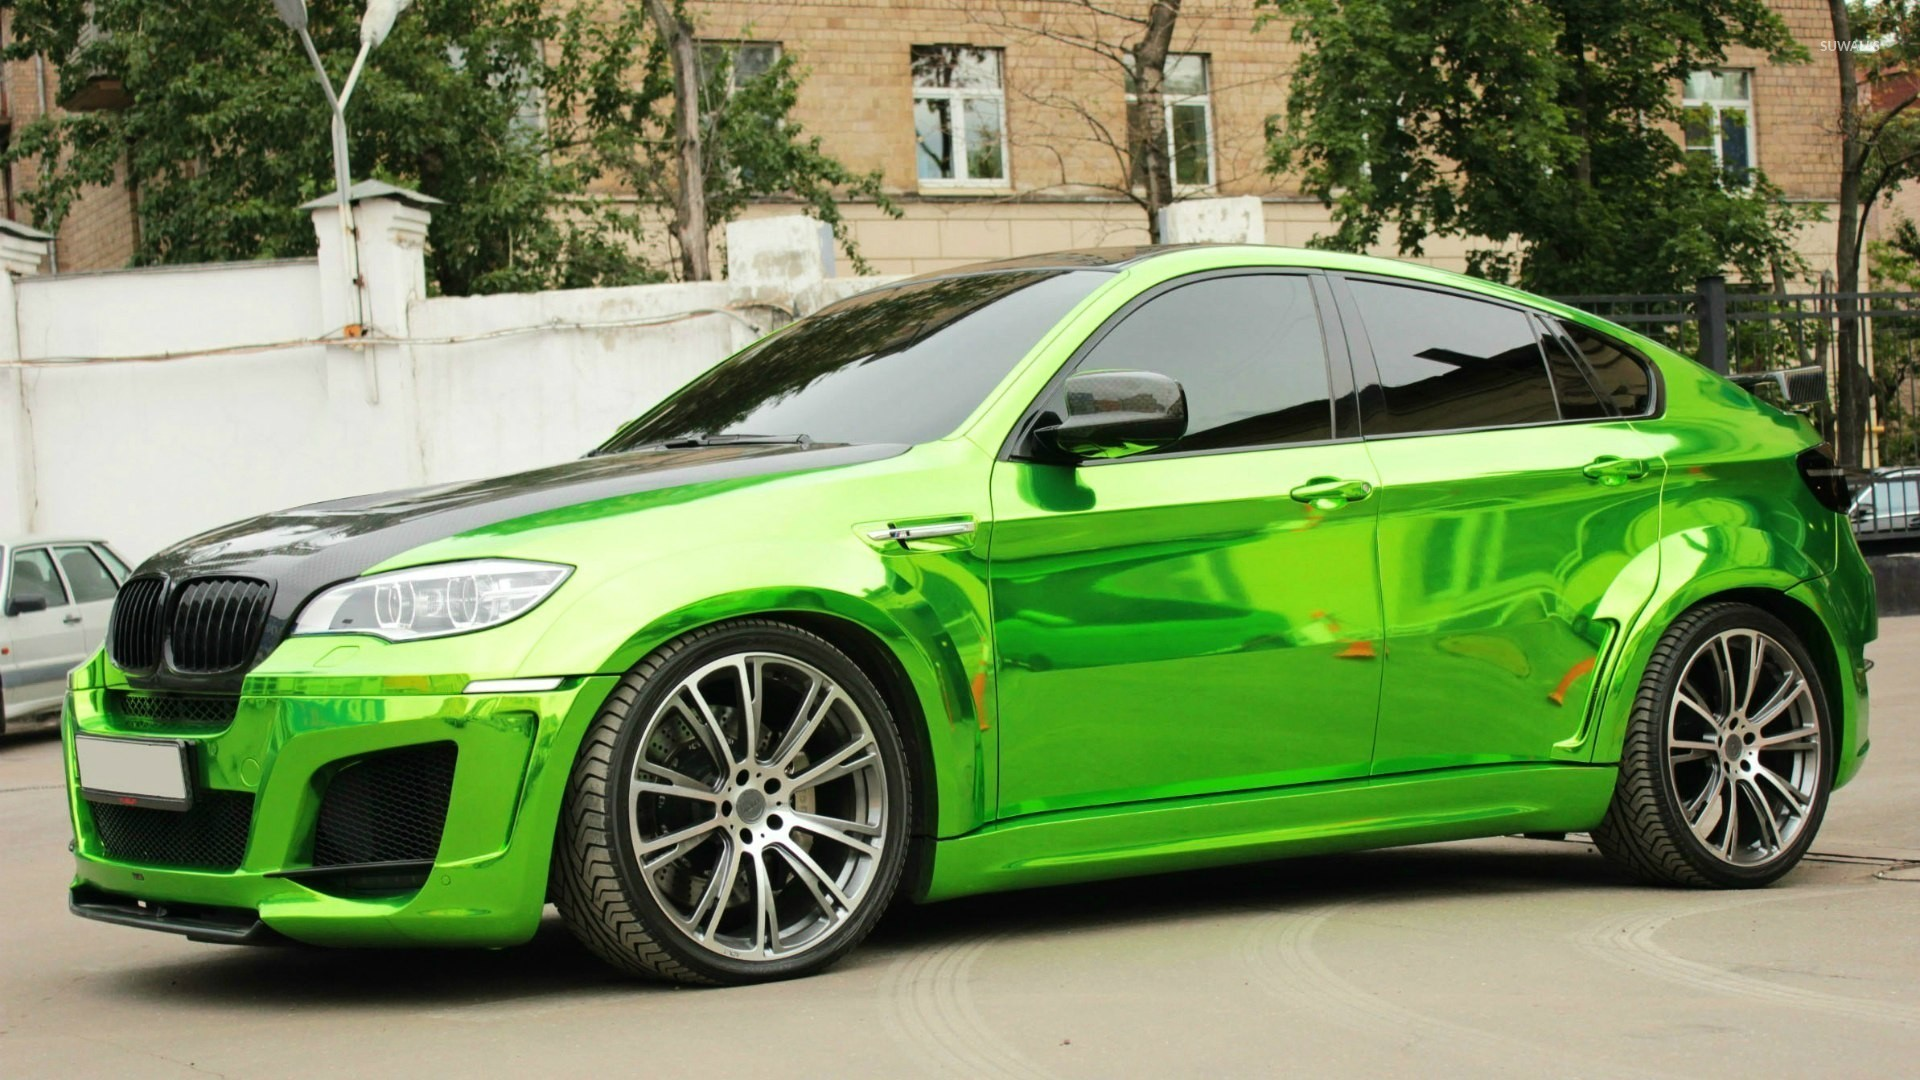 Side View Of A Green Bmw X6 Wallpaper Car Wallpapers 52436